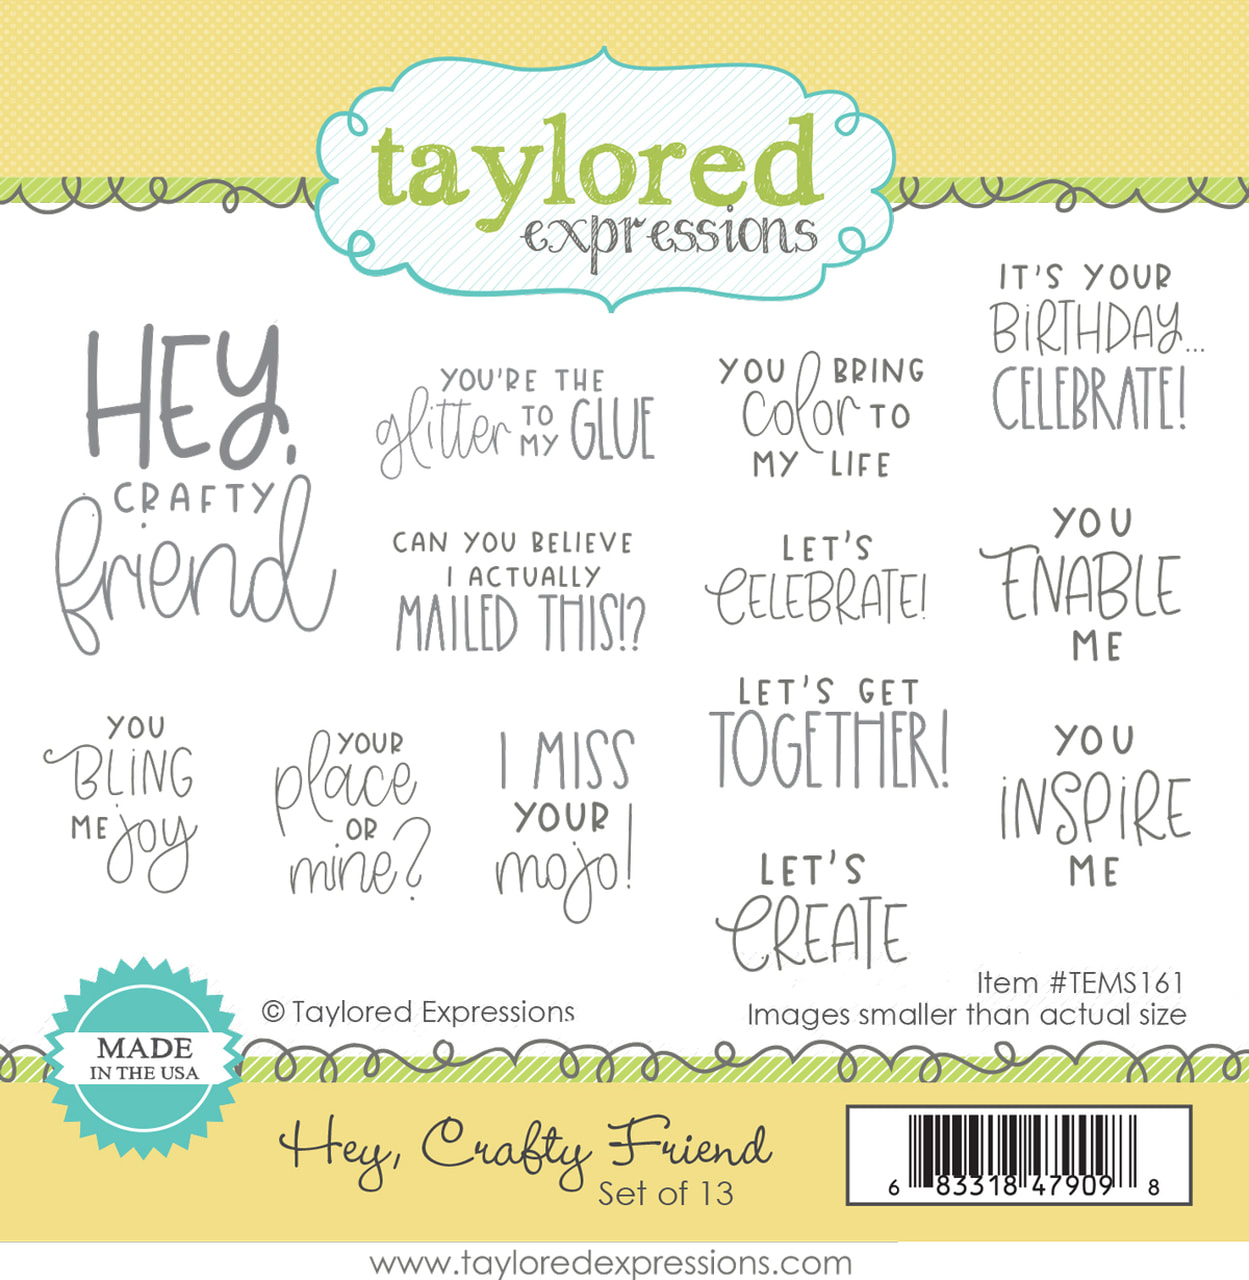 Taylored Expressions - Hey, Crafty Friend Stamp Set